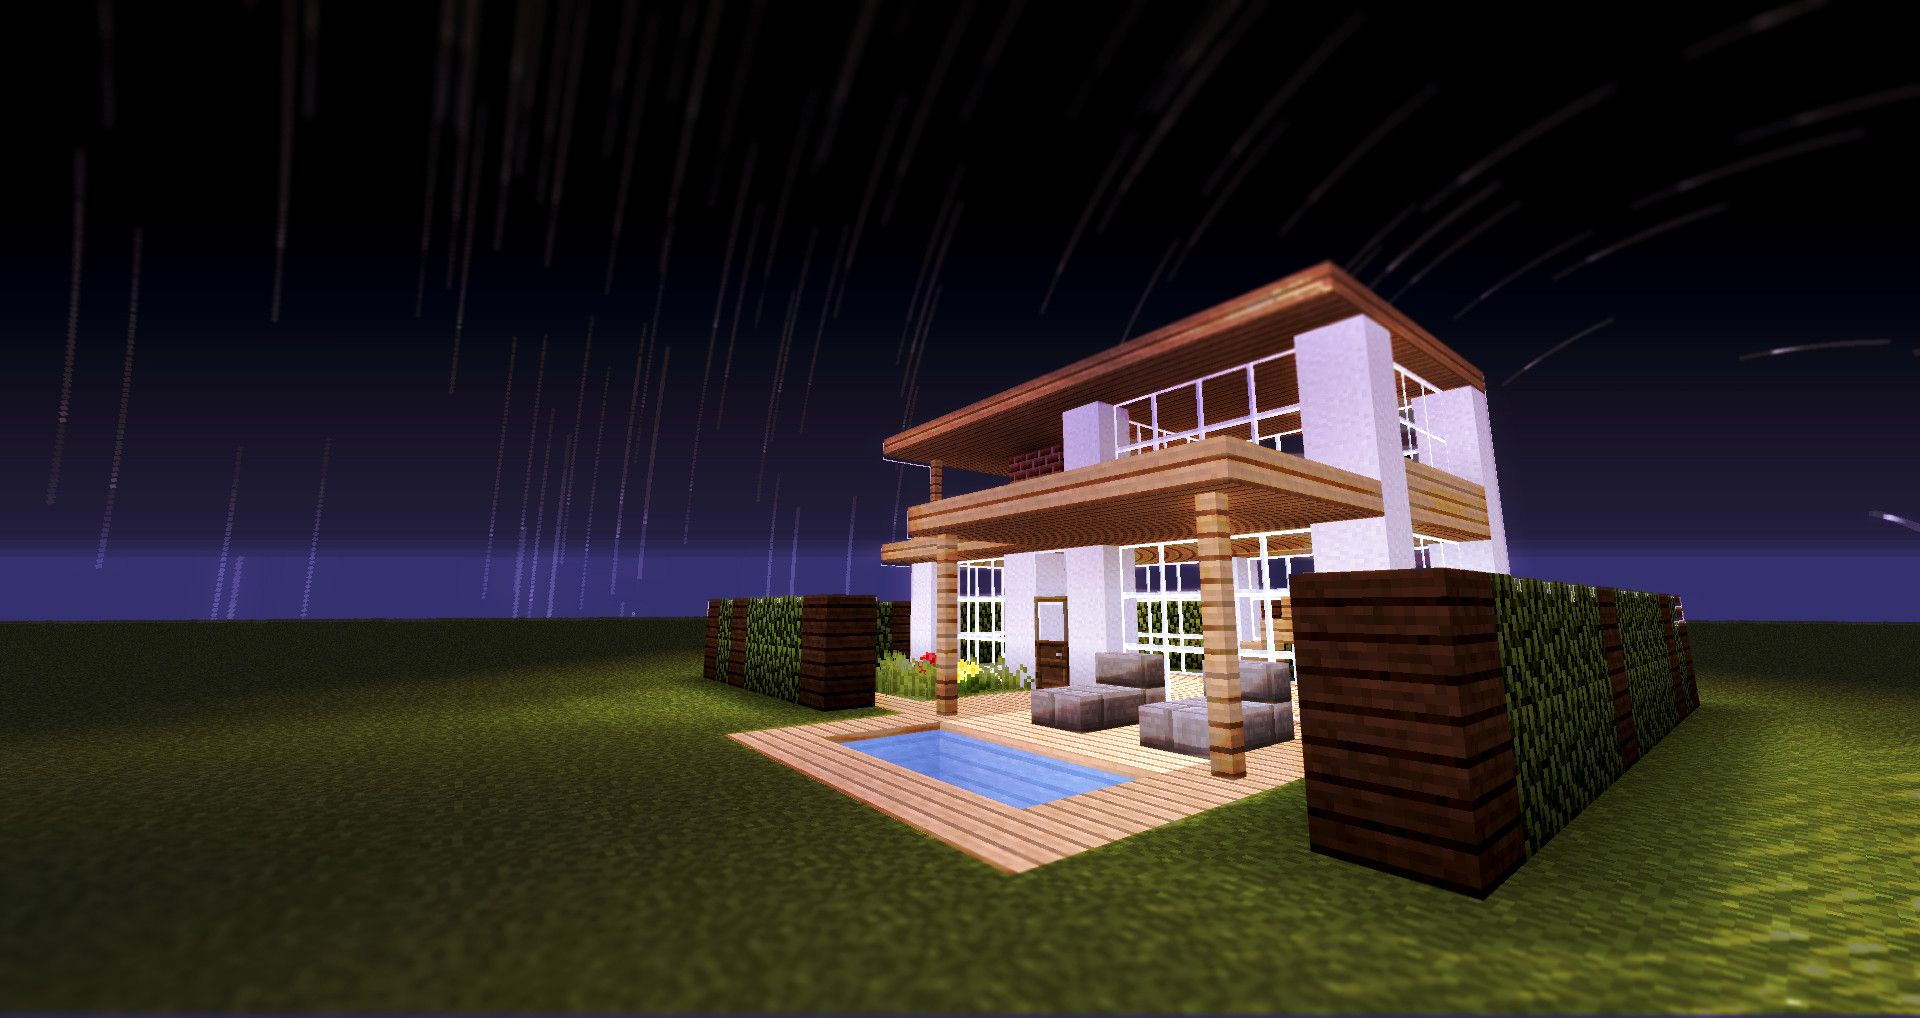 Minecraft House Time-lapse Star Trail | Easy minecraft ...